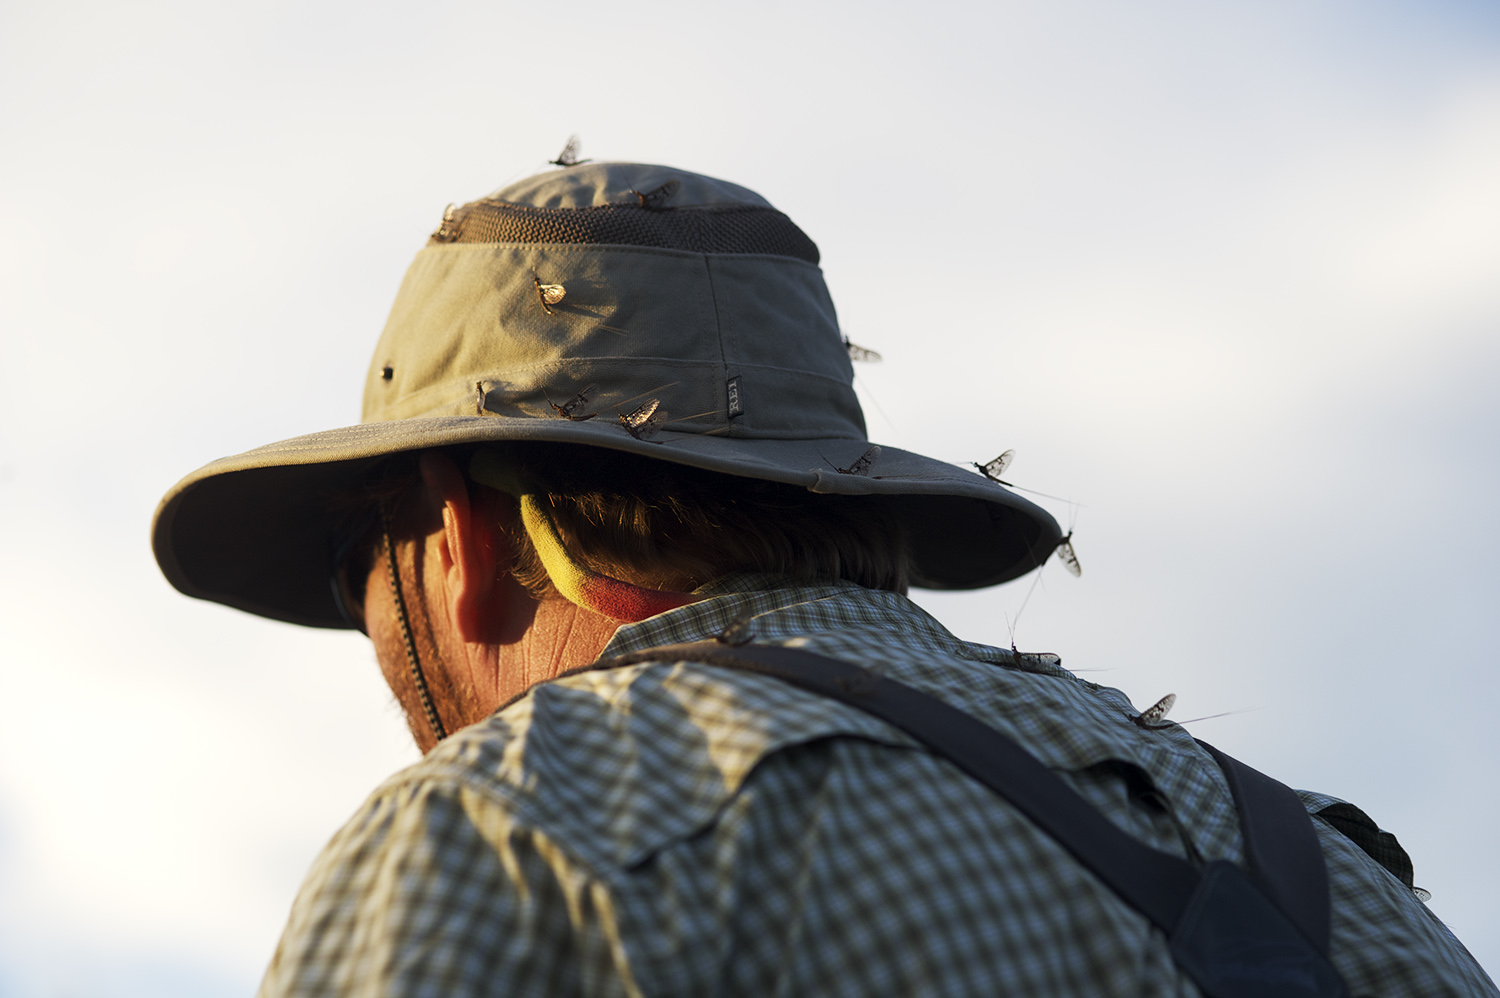 Guide hat and Drakes.